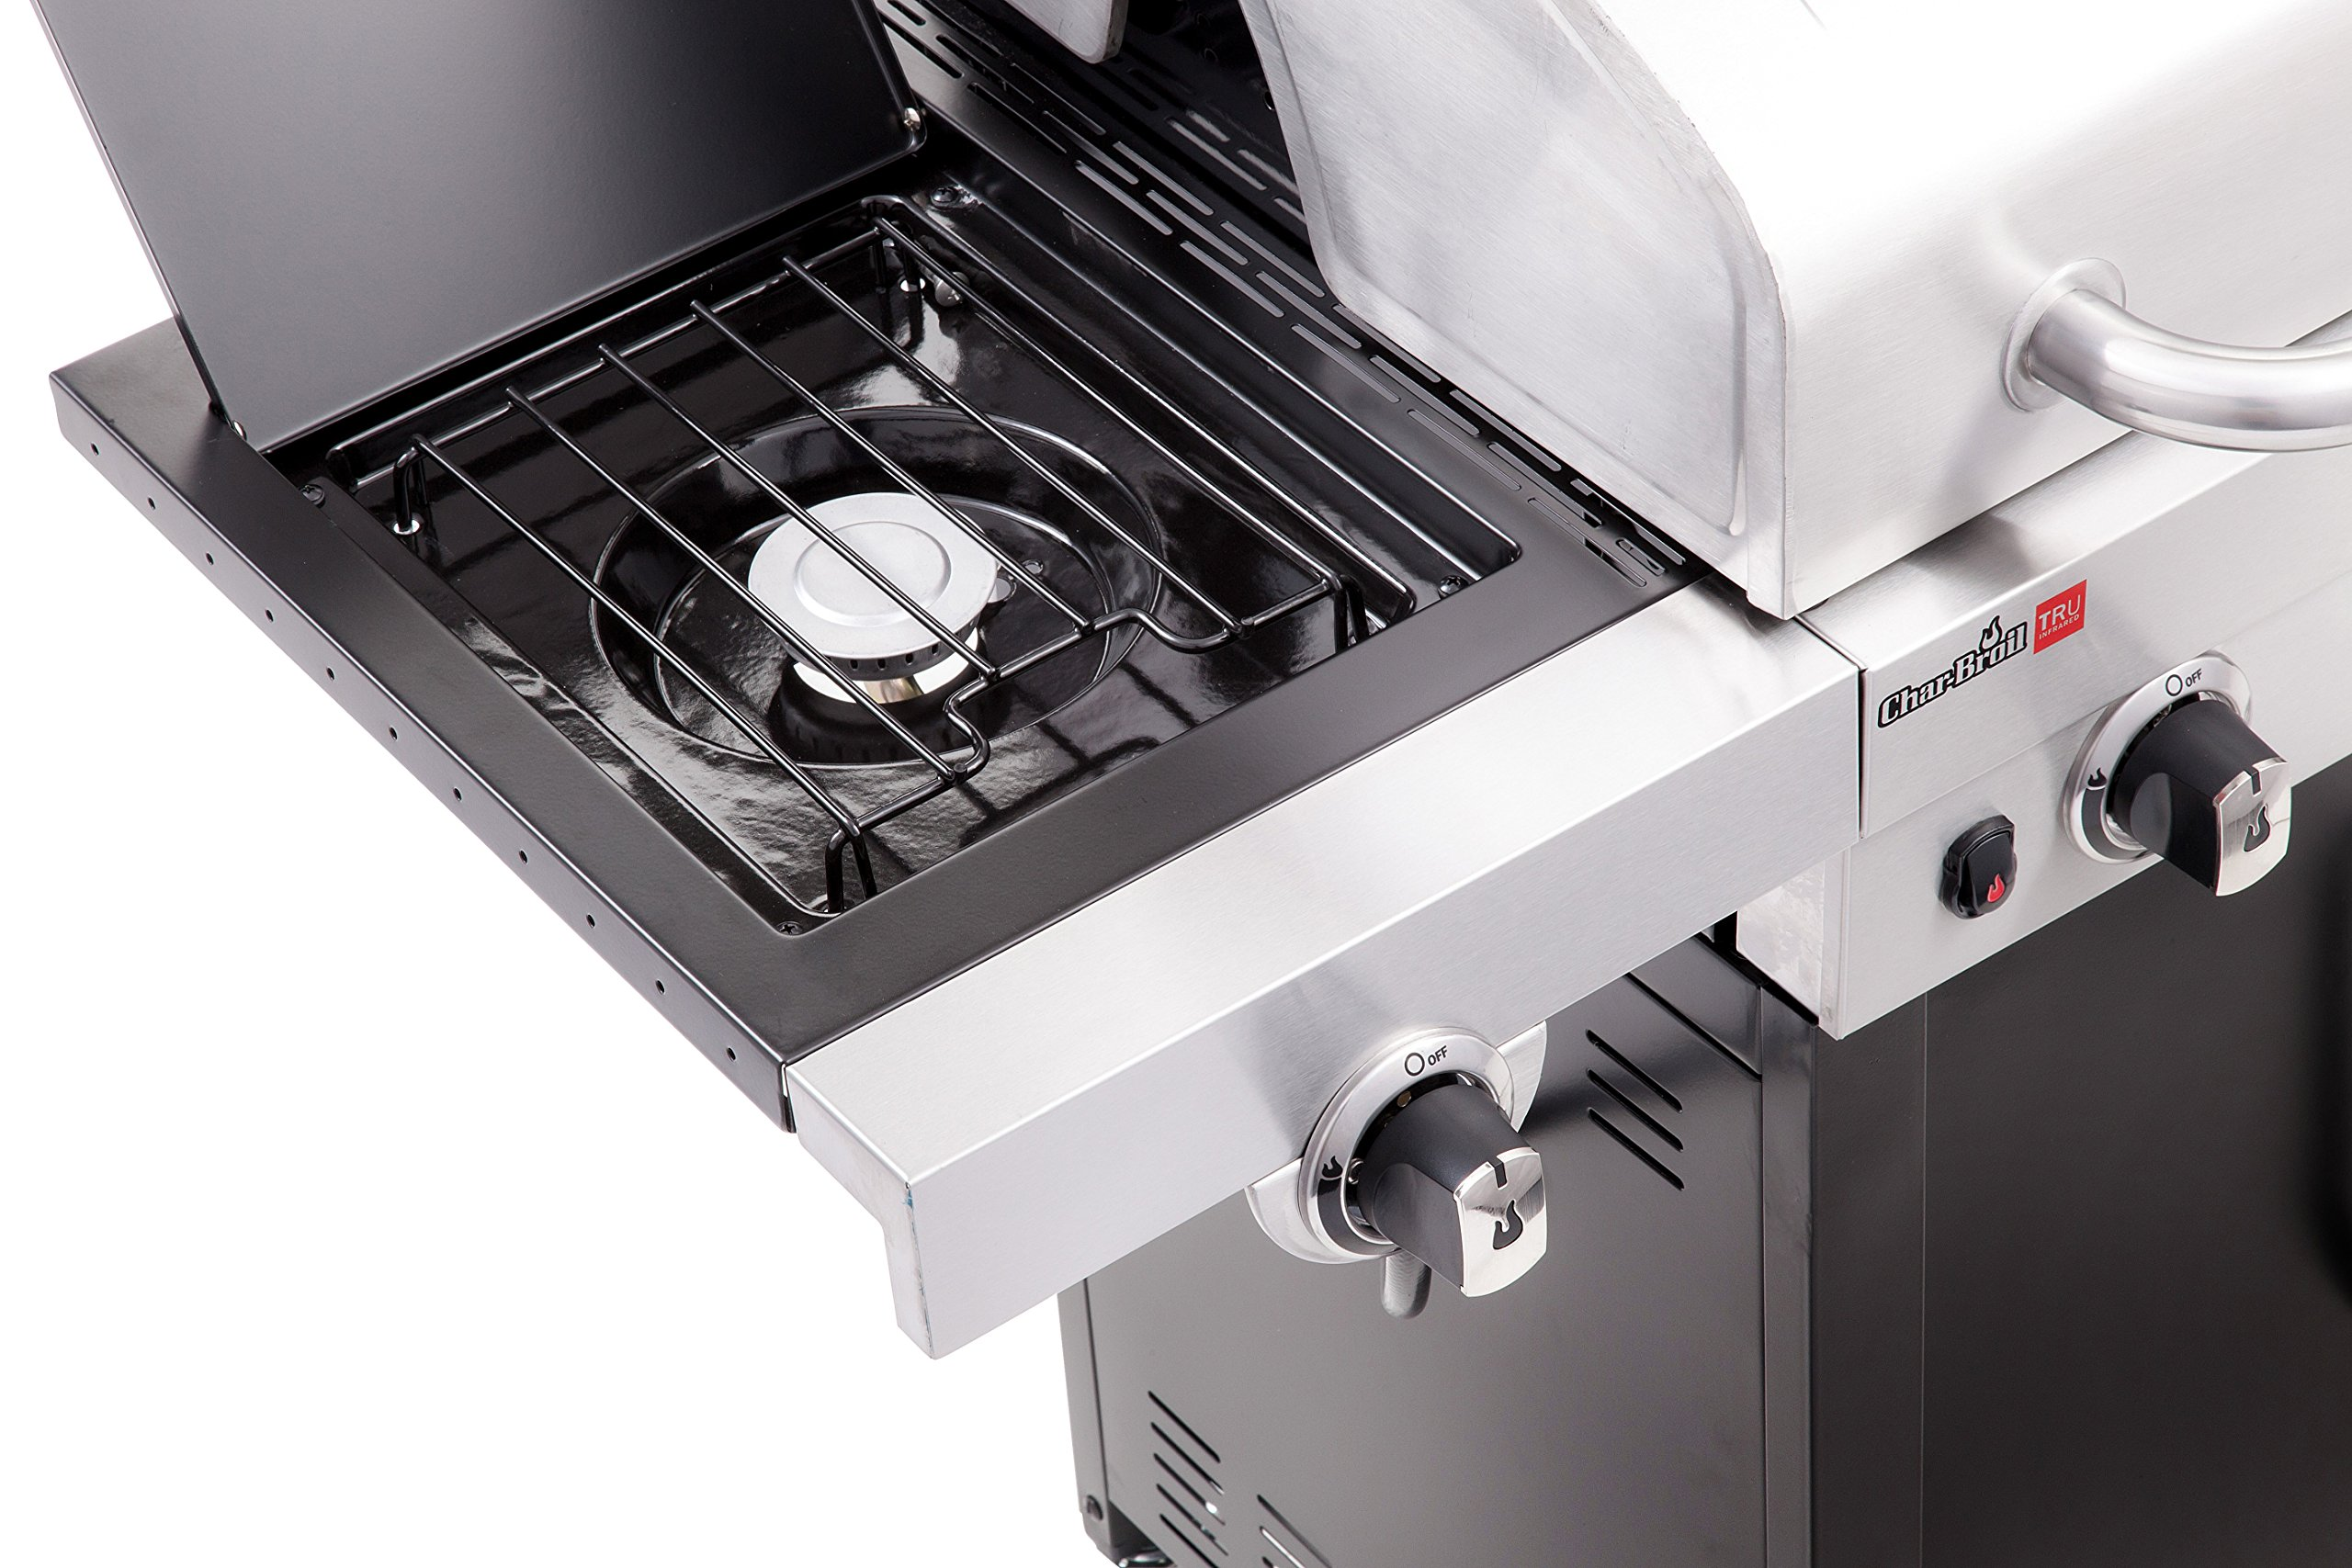 Char-Broil Performance TRU-Infrared 450 3-Burner Cabinet Liquid Propane Gas Grill by Char-Broil (Image #6)